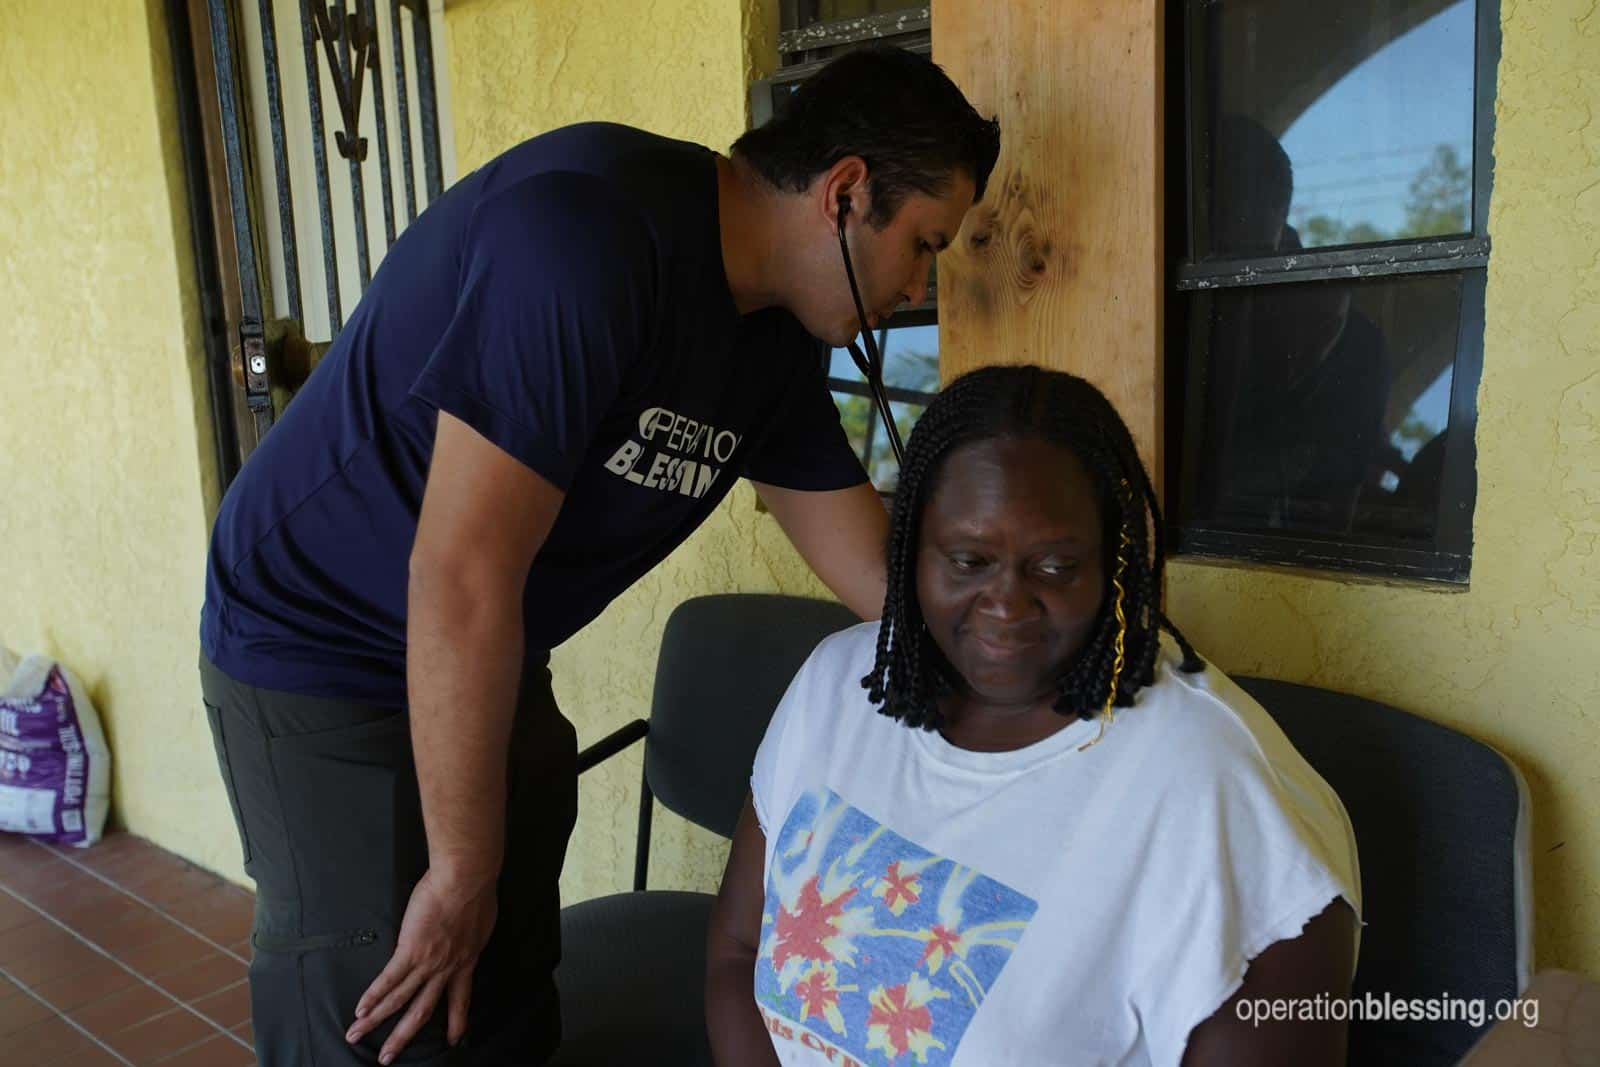 Operation Blessing providing medical aid in Bahamas.